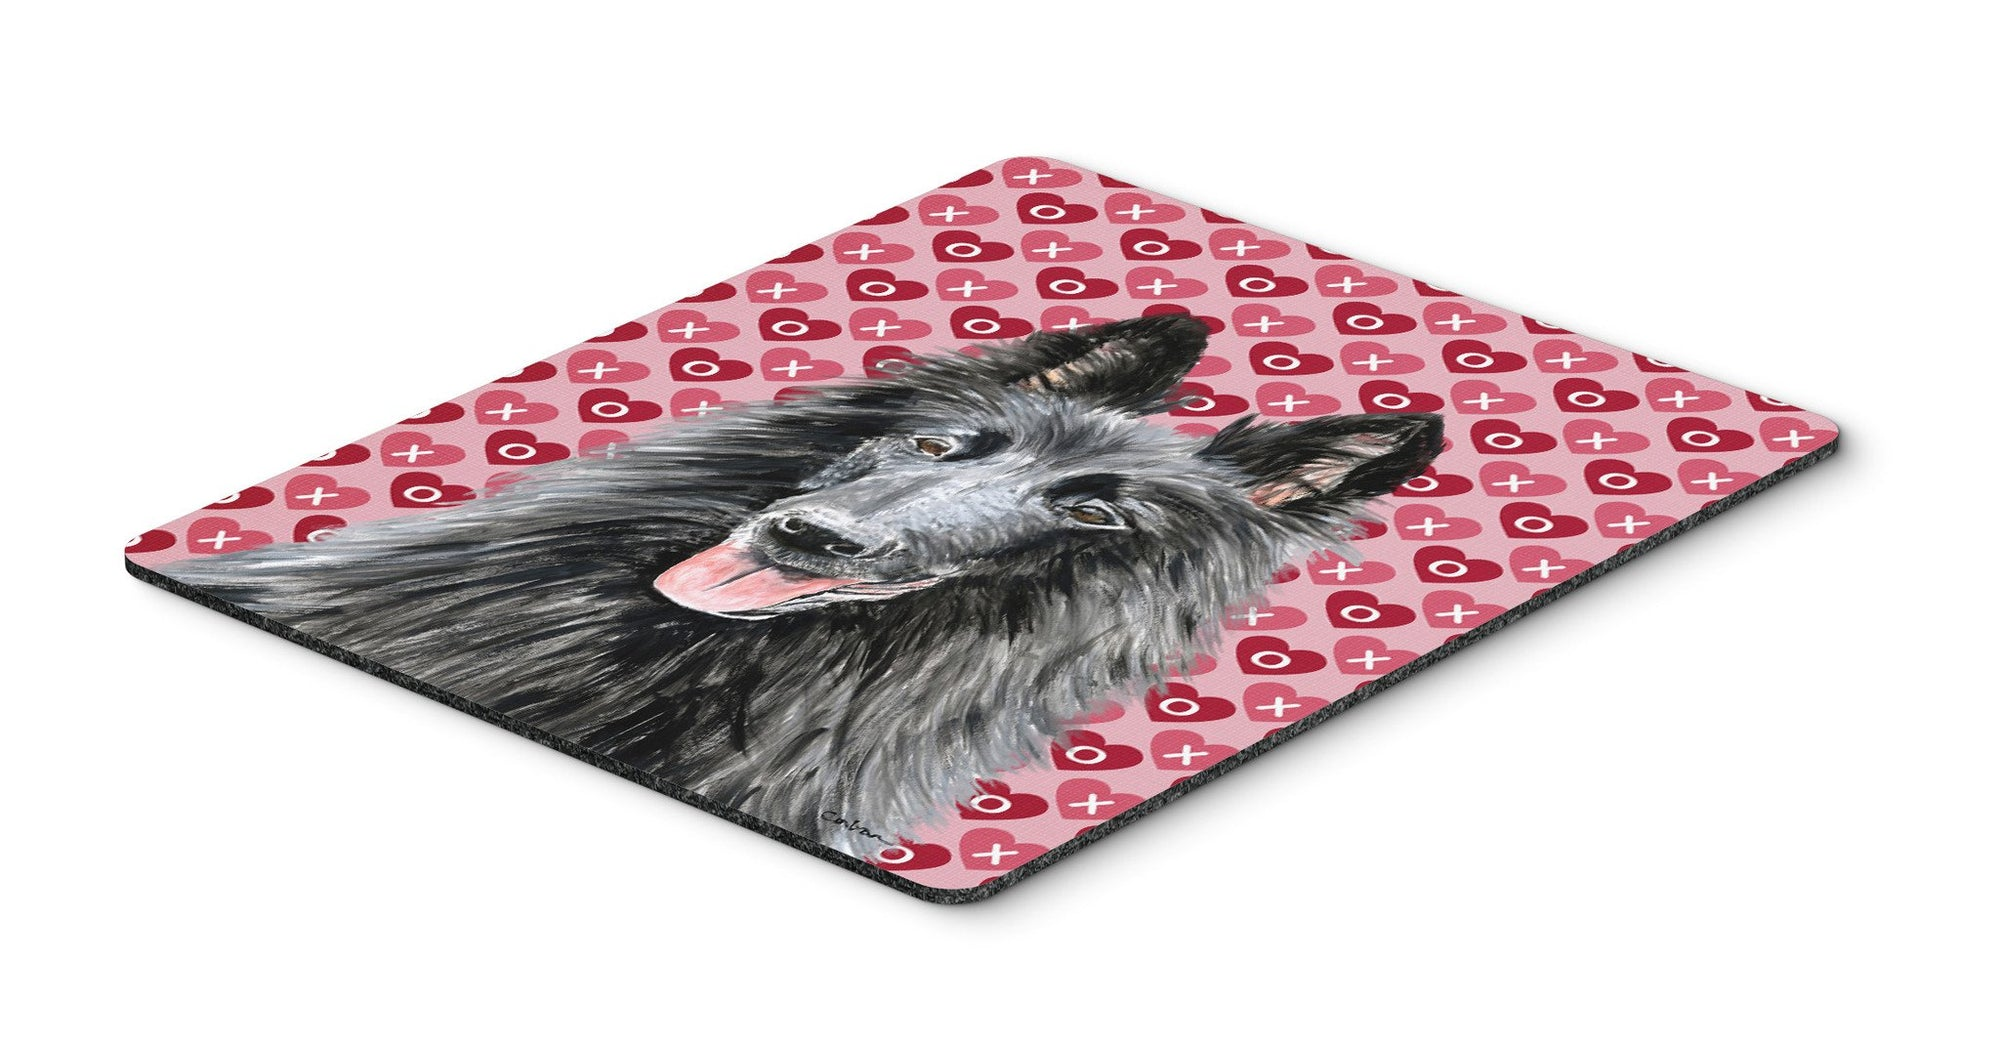 Belgian Sheepdog Hearts Love and Valentine's Day Mouse Pad, Hot Pad or Trivet by Caroline's Treasures